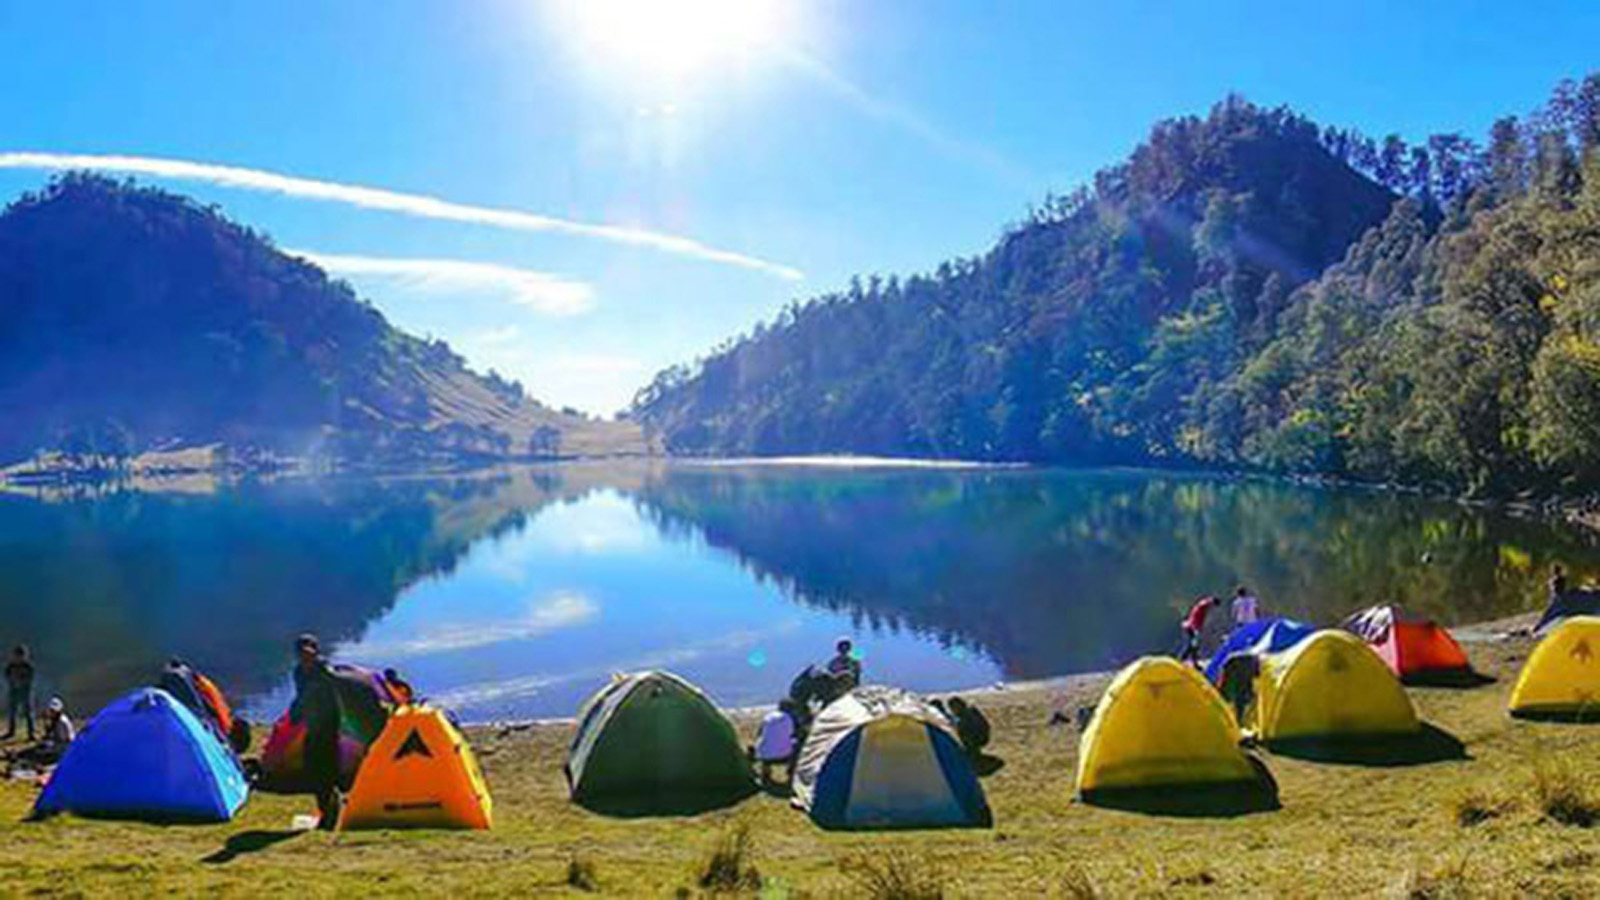 Camping on Kumbolo Lake under Mount Semeru